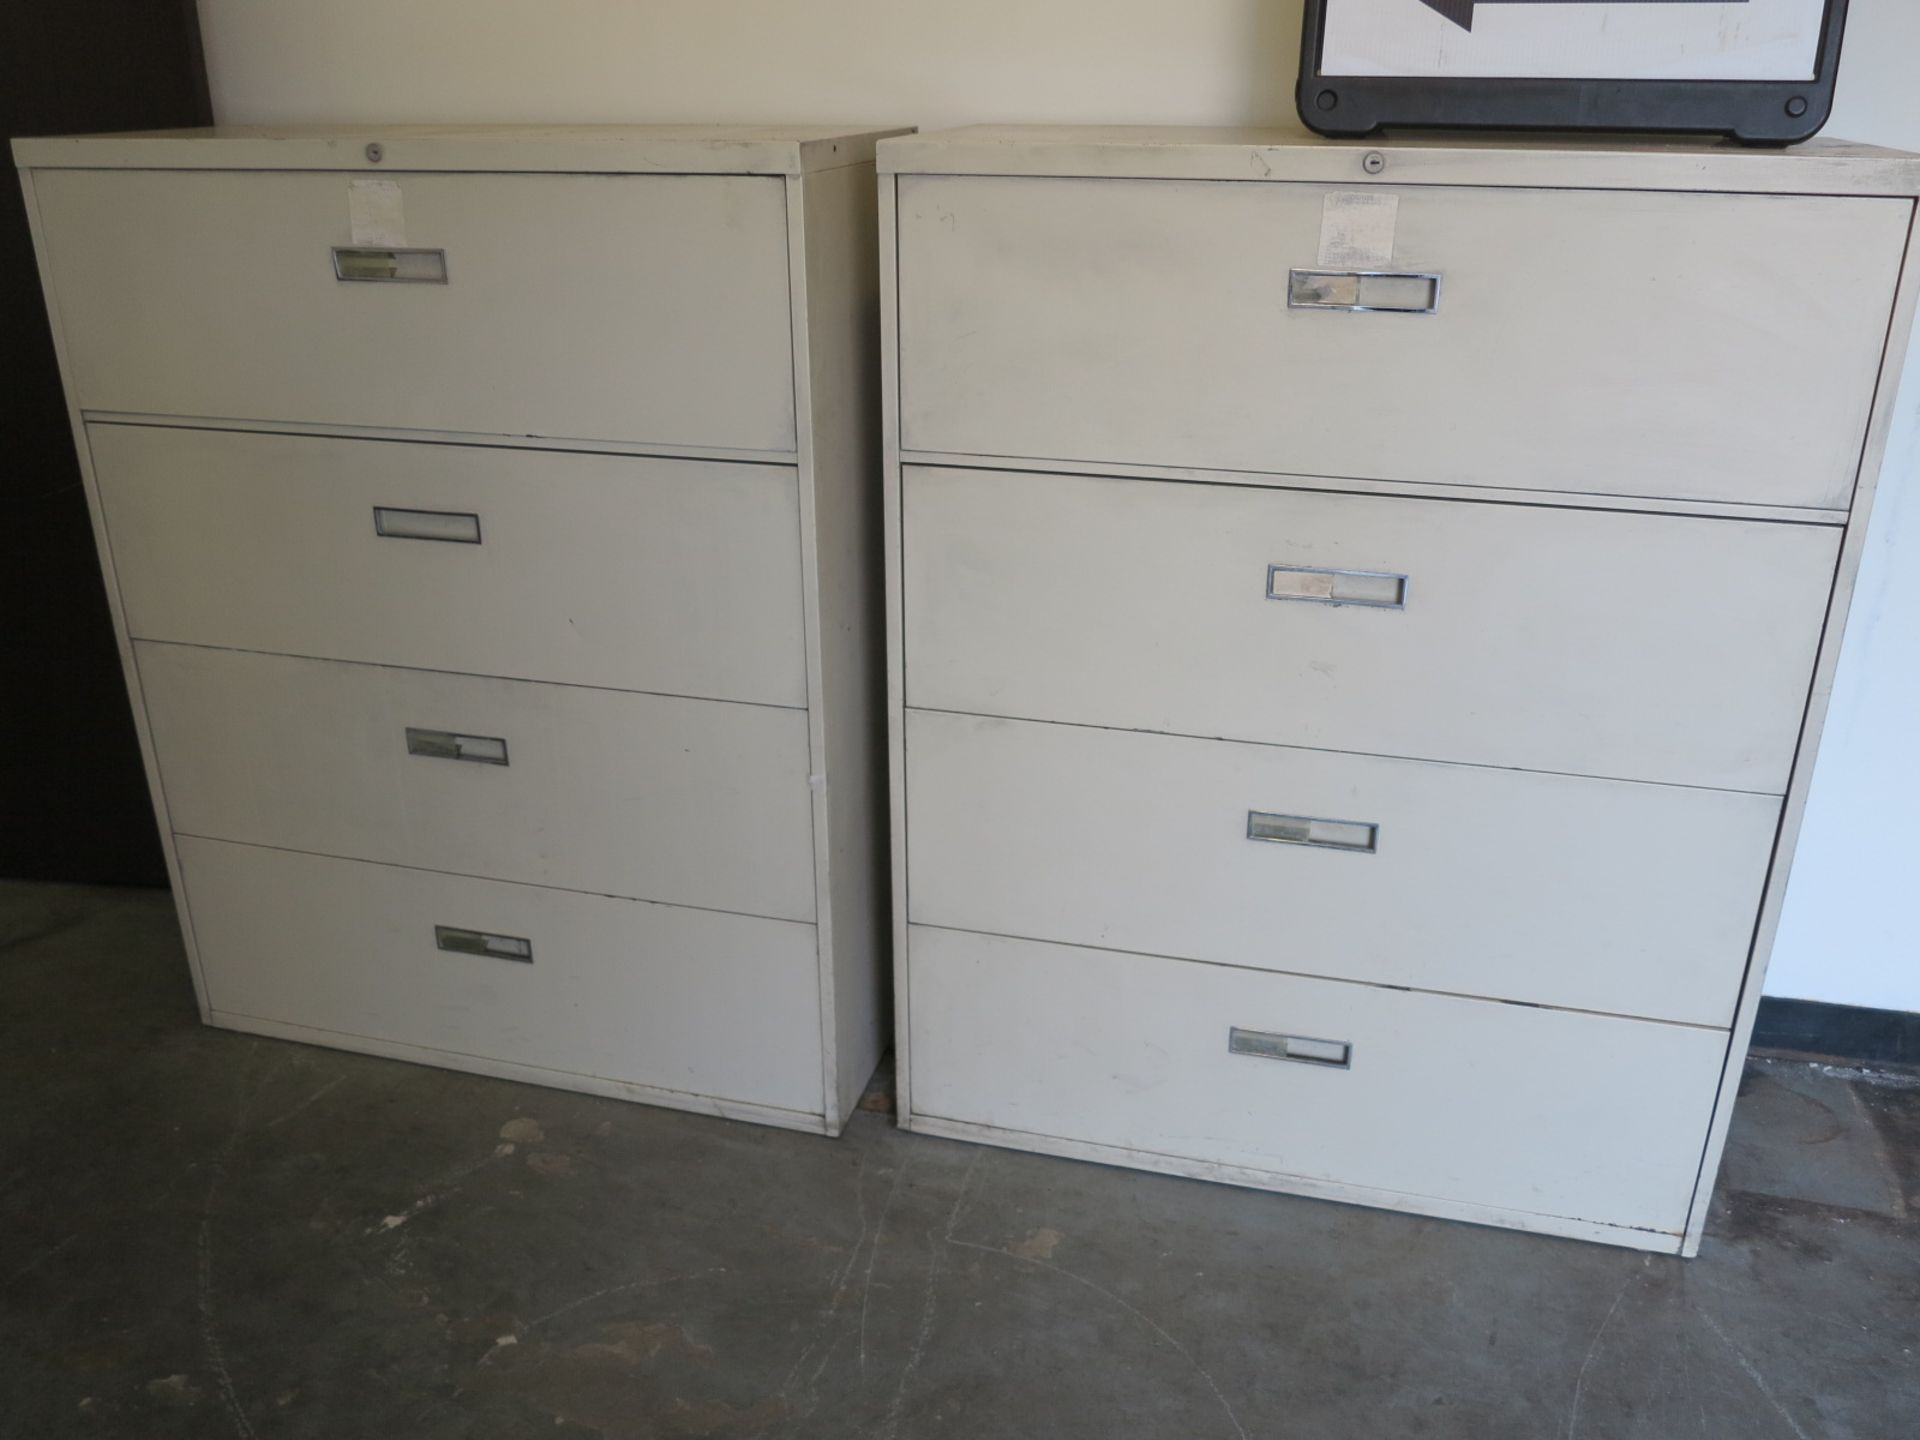 Lot 48 - LOT - CONTENTS OF ROOM, TO INCLUDE: REFRIGERATOR, DESK, ALL FILE AND STORAGE CABINETS AND NORDIC